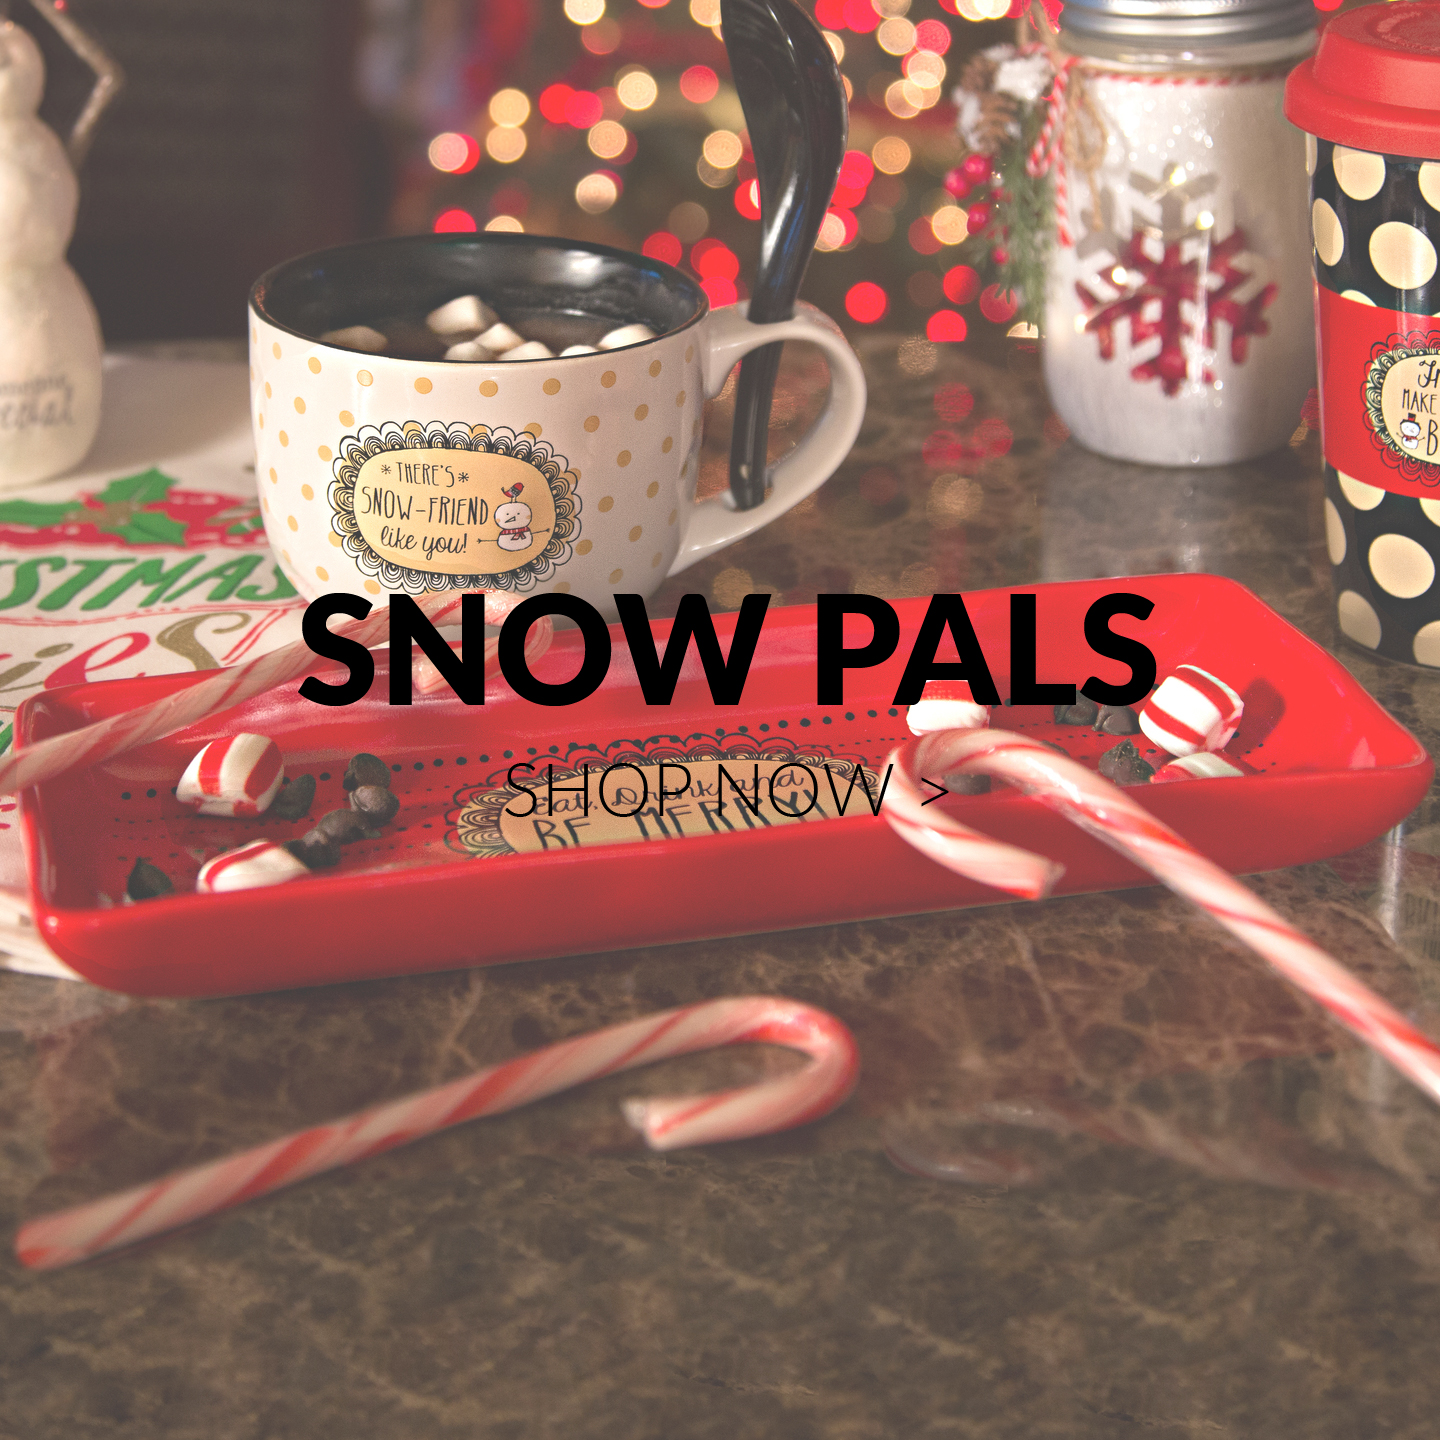 Snow Pals by Amylee Weeks